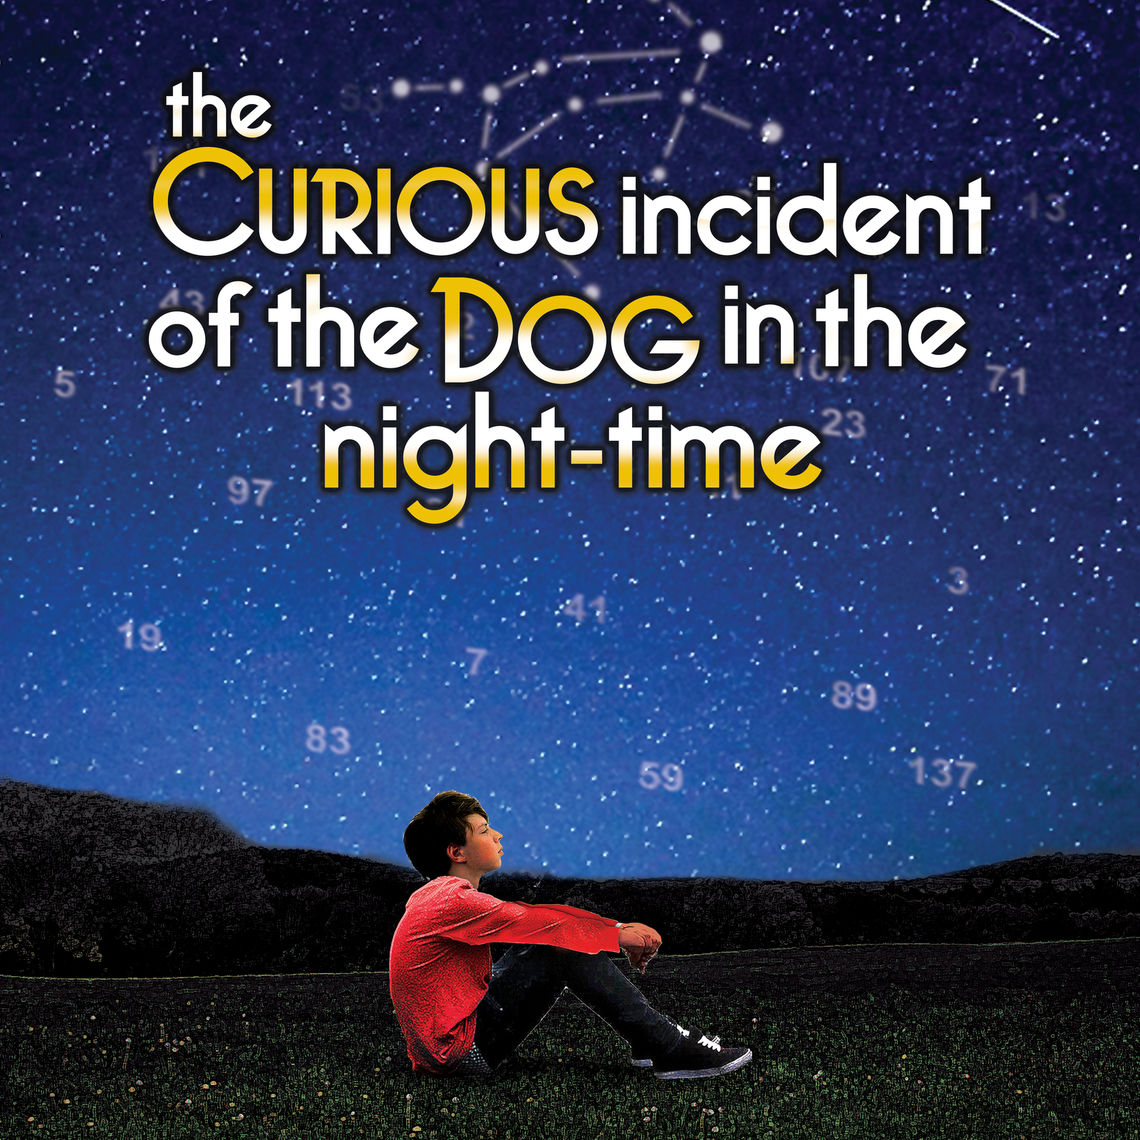 curious incident print file